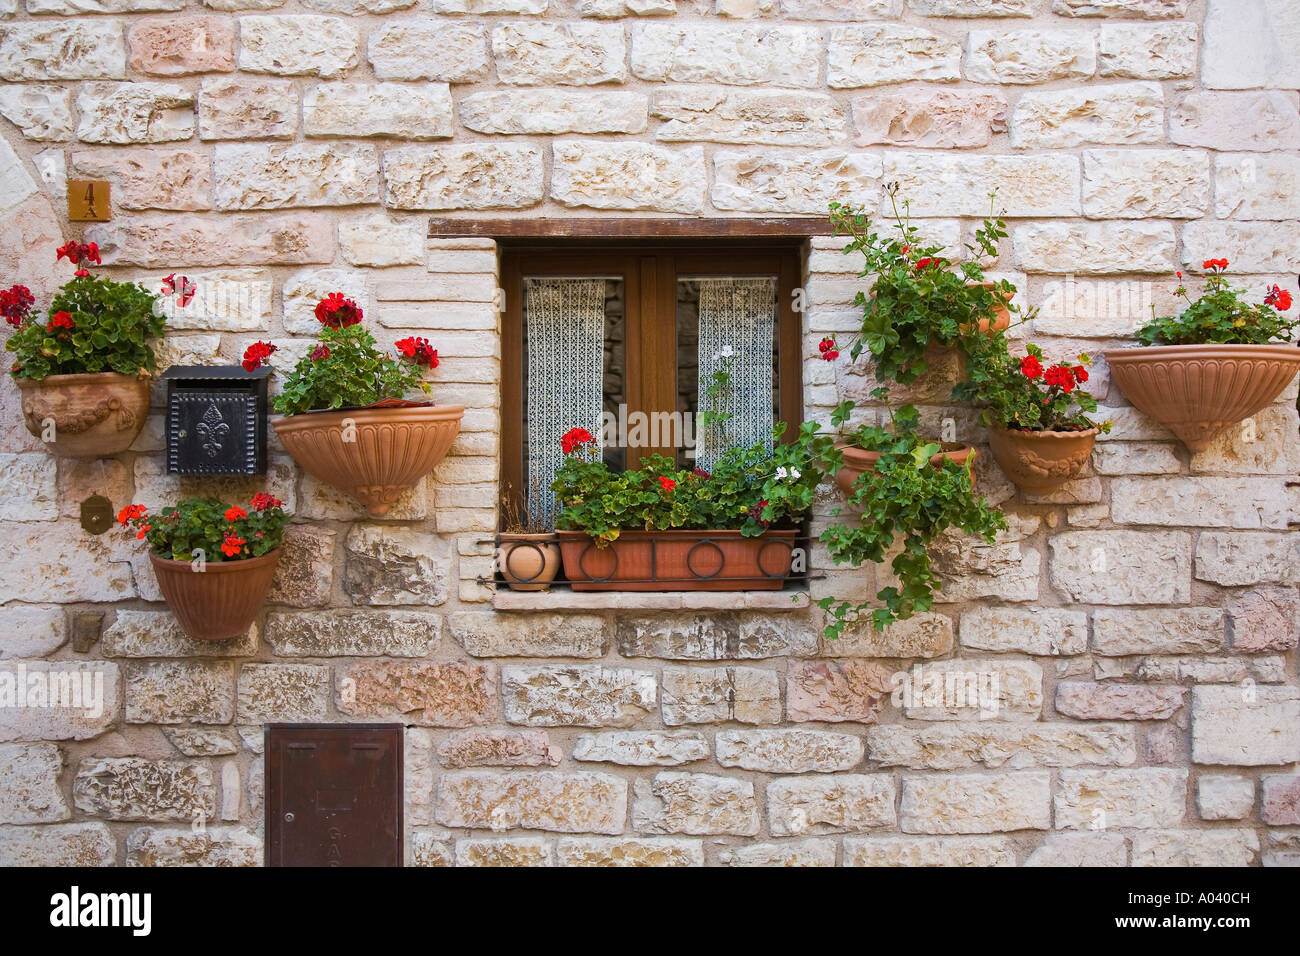 terracotta flower pots and window box with red geraniums on stone stock photo royalty free. Black Bedroom Furniture Sets. Home Design Ideas